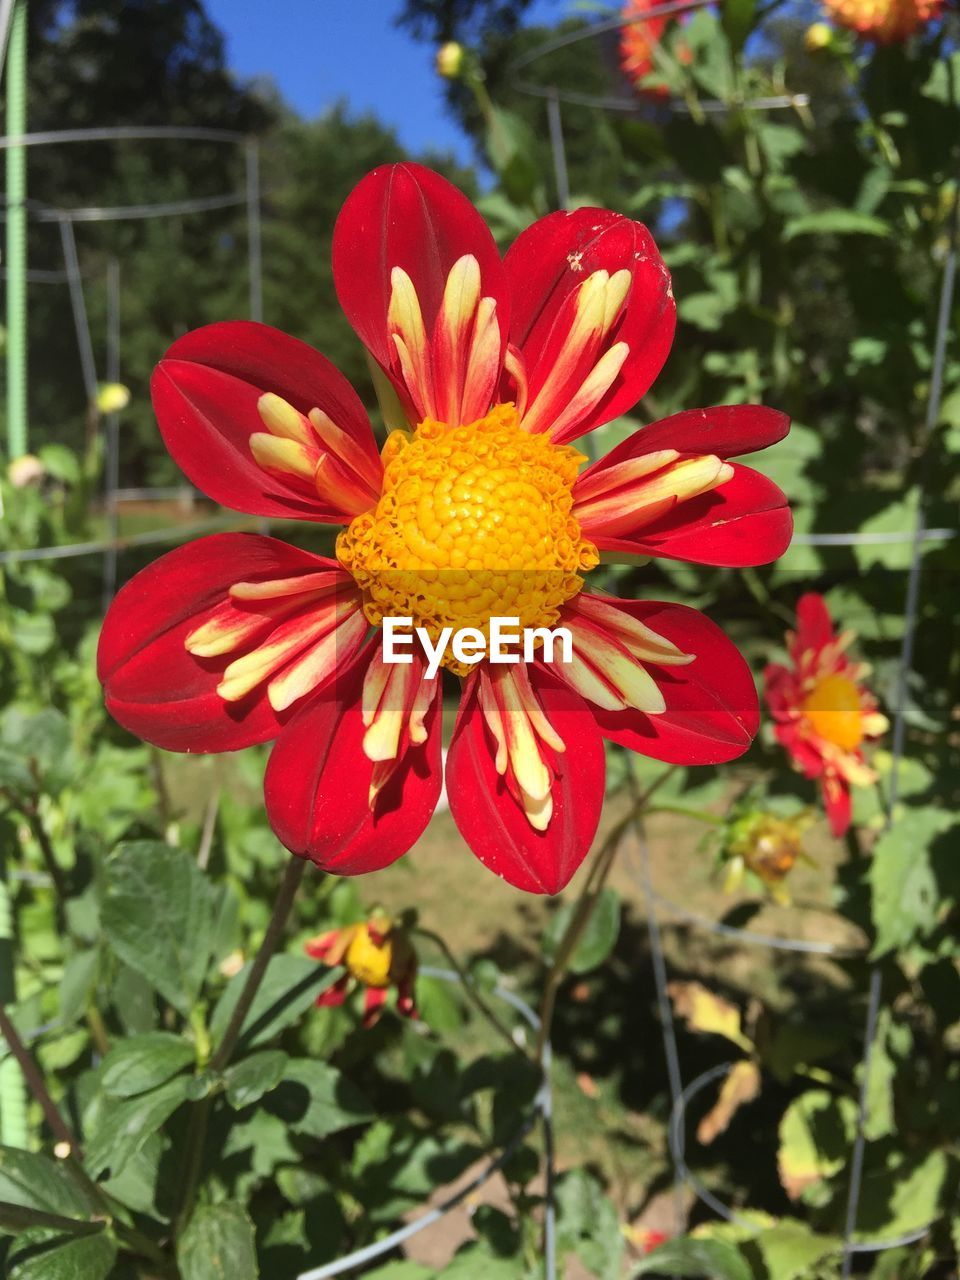 flower, petal, beauty in nature, flower head, nature, fragility, freshness, growth, plant, red, blooming, pollen, day, no people, stamen, yellow, close-up, outdoors, focus on foreground, springtime, zinnia, hibiscus